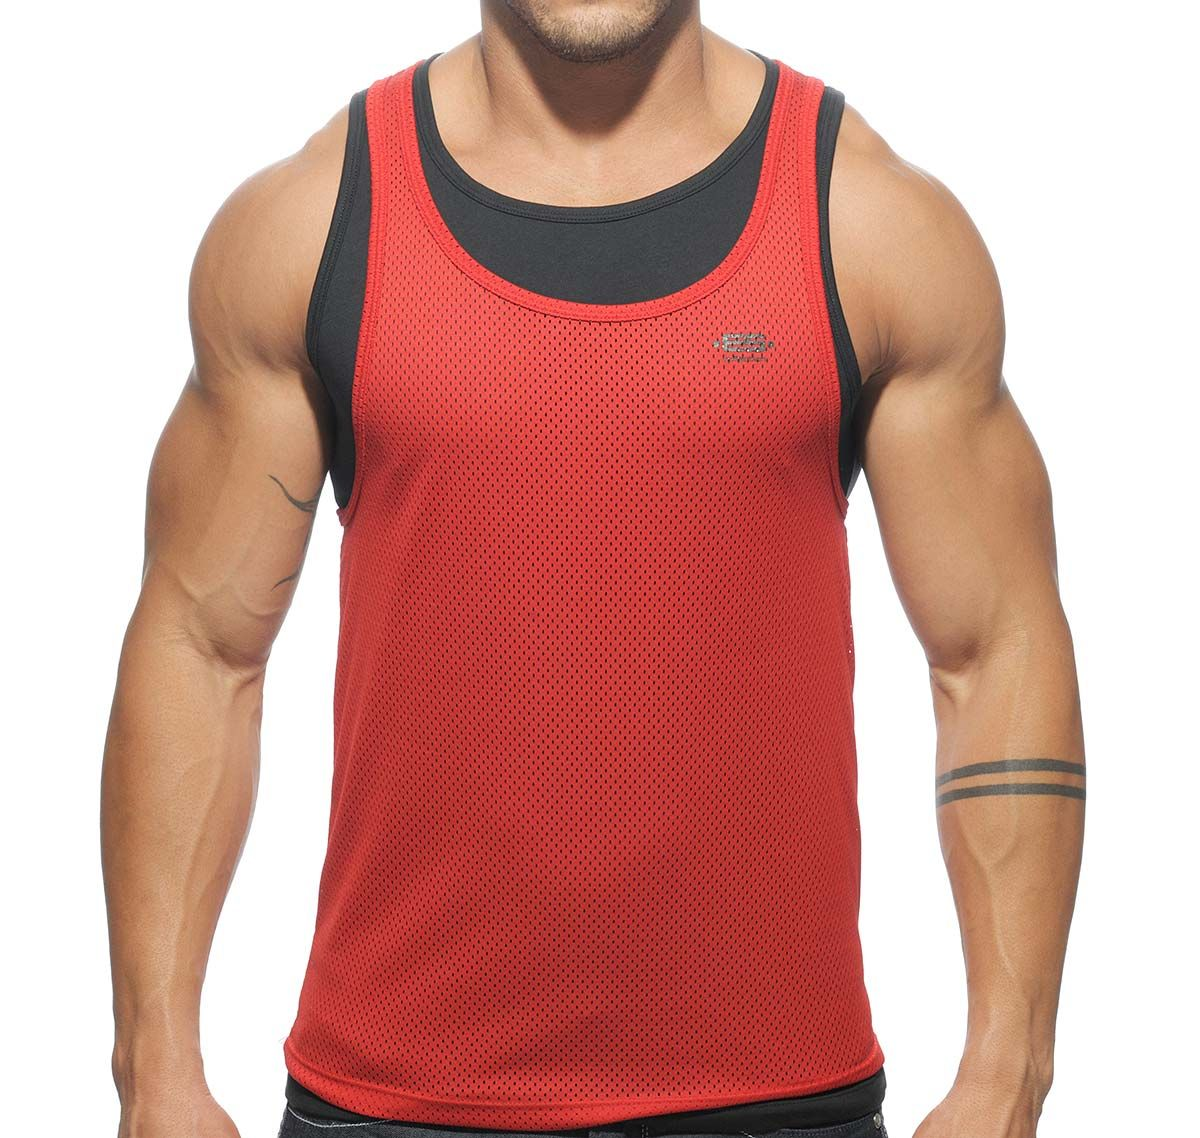 ES Collection Canotta SUPER POSED LOW RIDER TS123, rosso